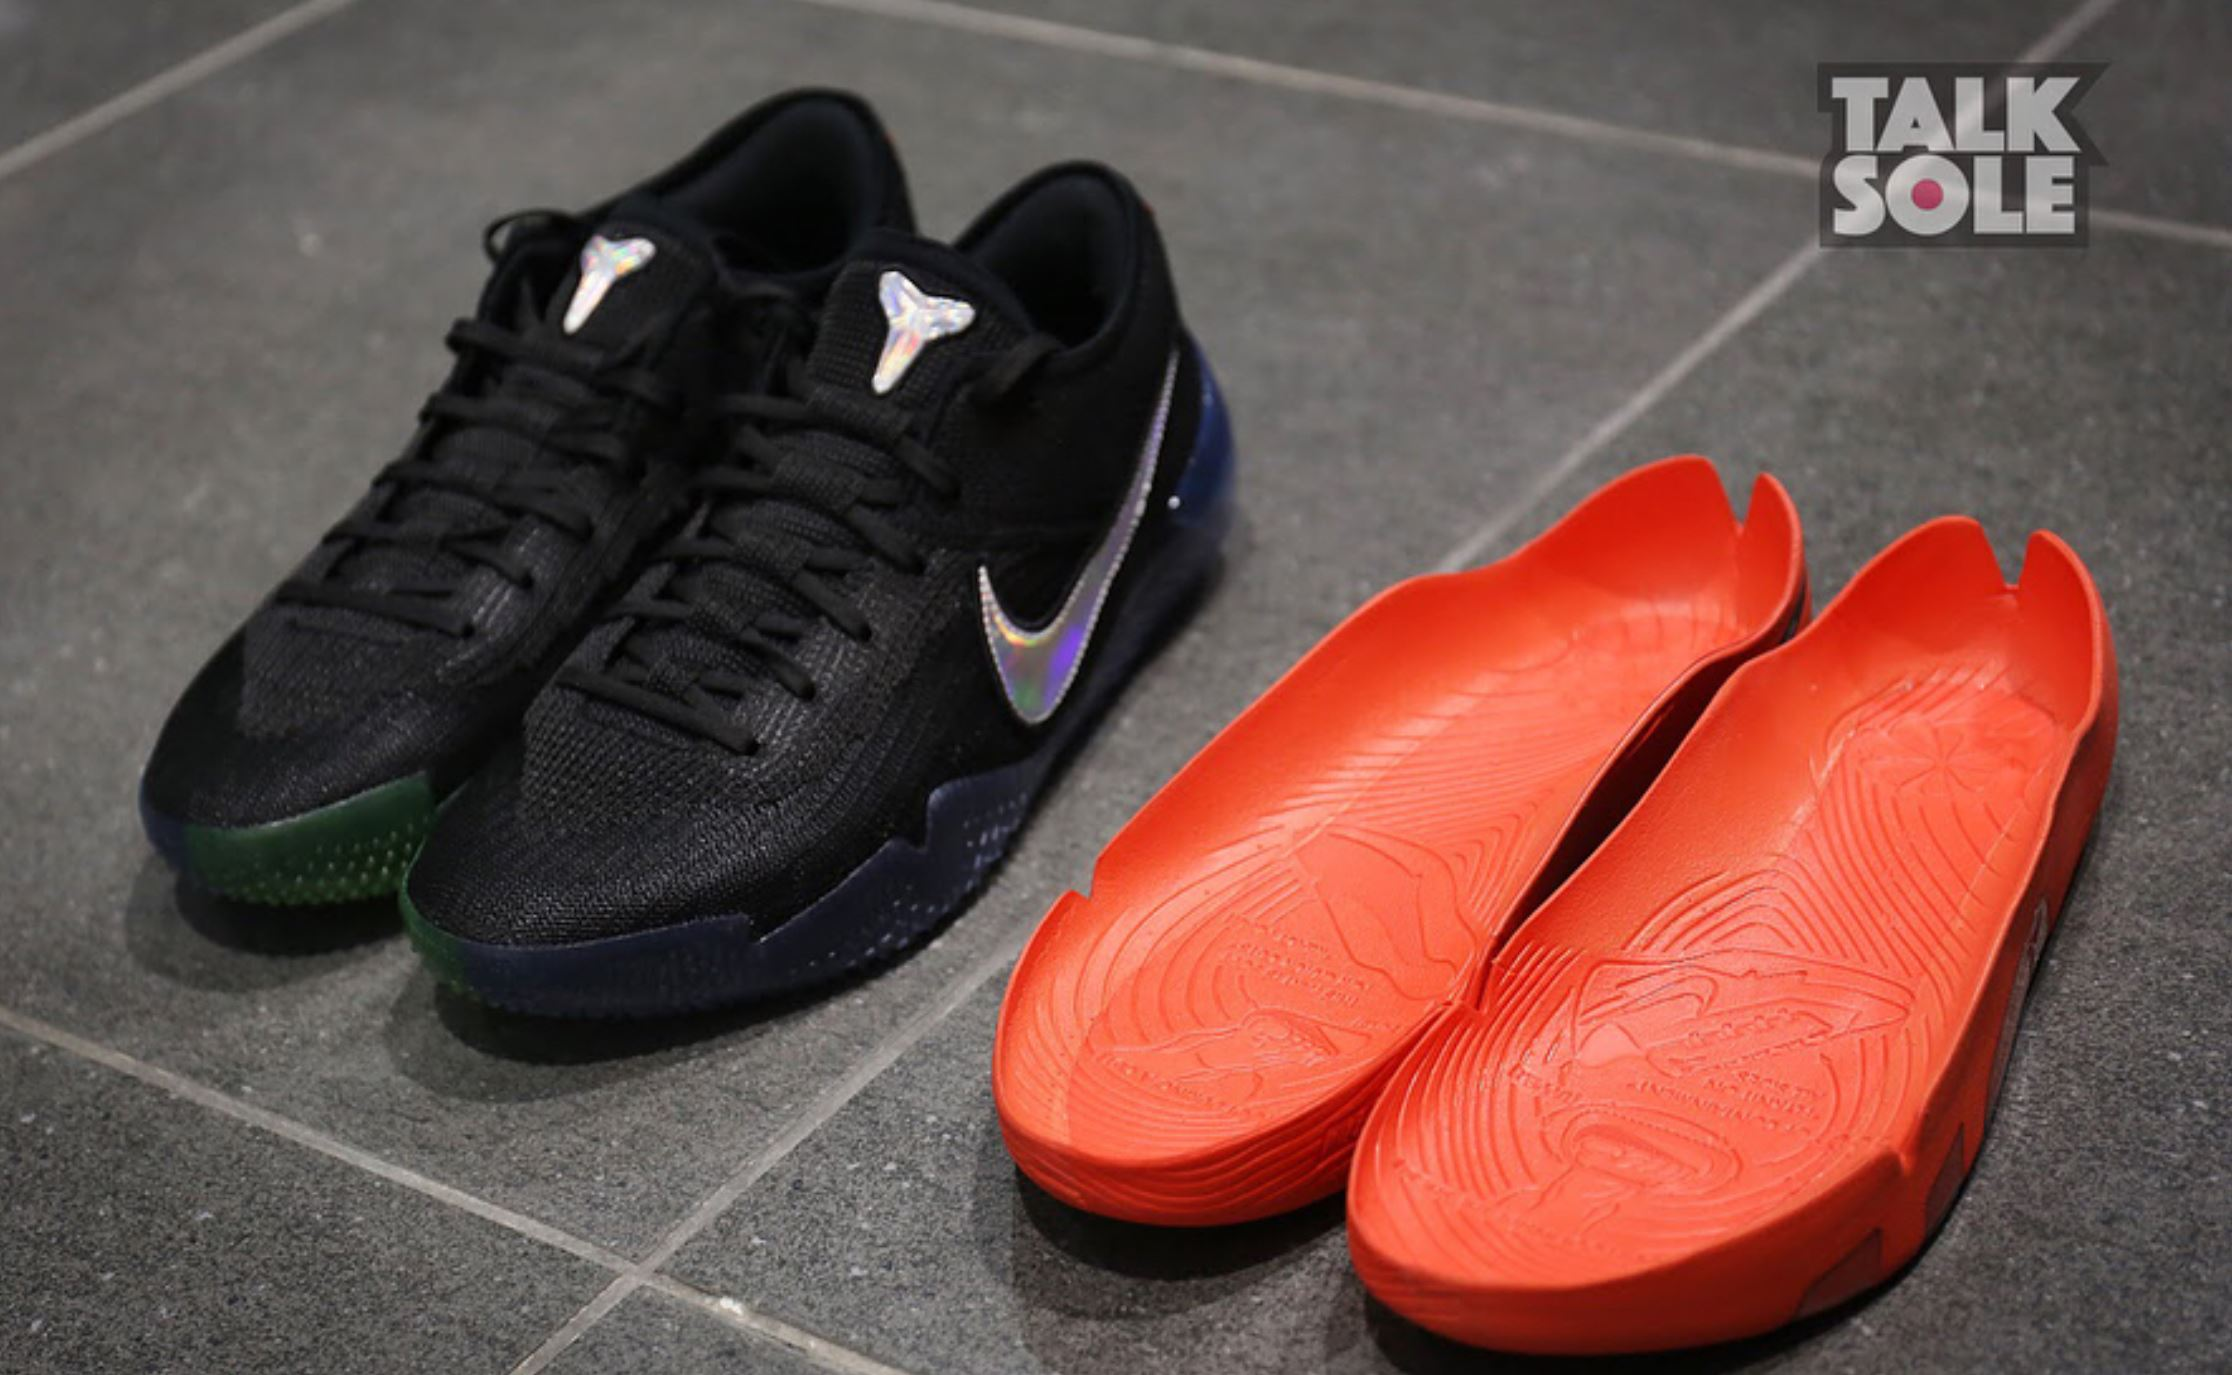 sale retailer 8b826 8699f Detailed Images Show What We Can Expect from the Nike Kobe ...